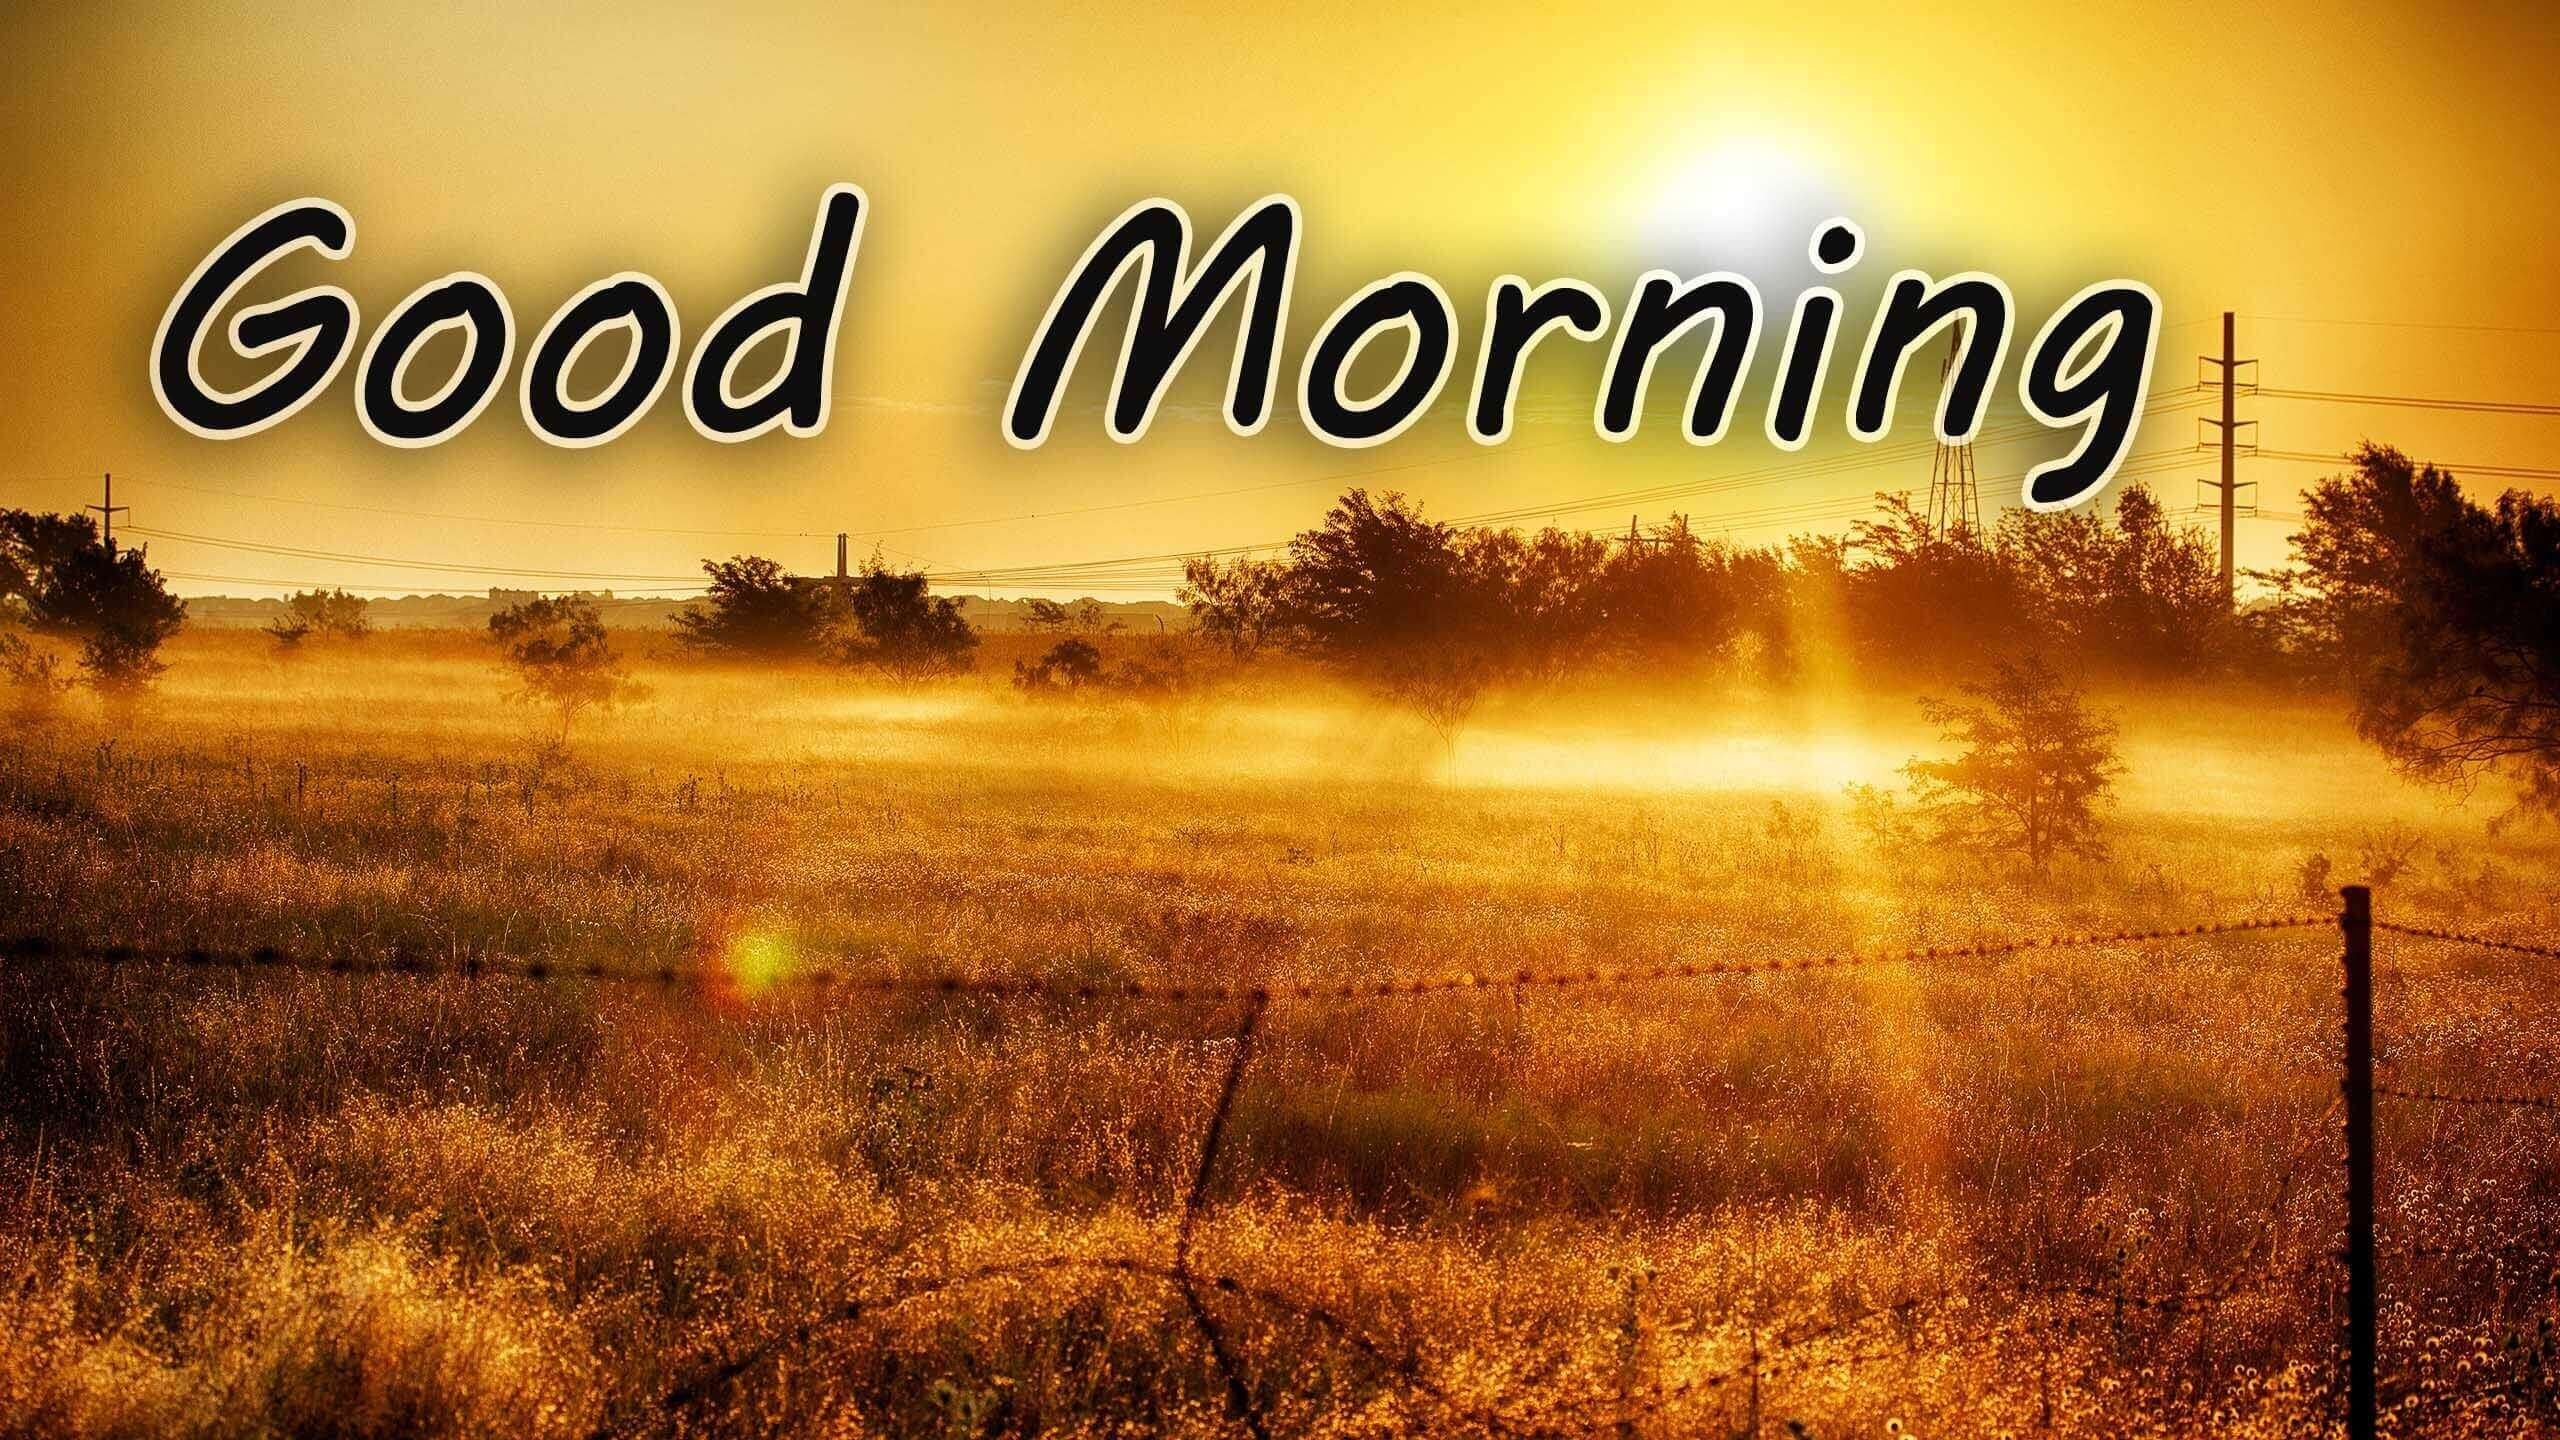 Good Morning Whatsapp Video Status & Quotes Free Download.